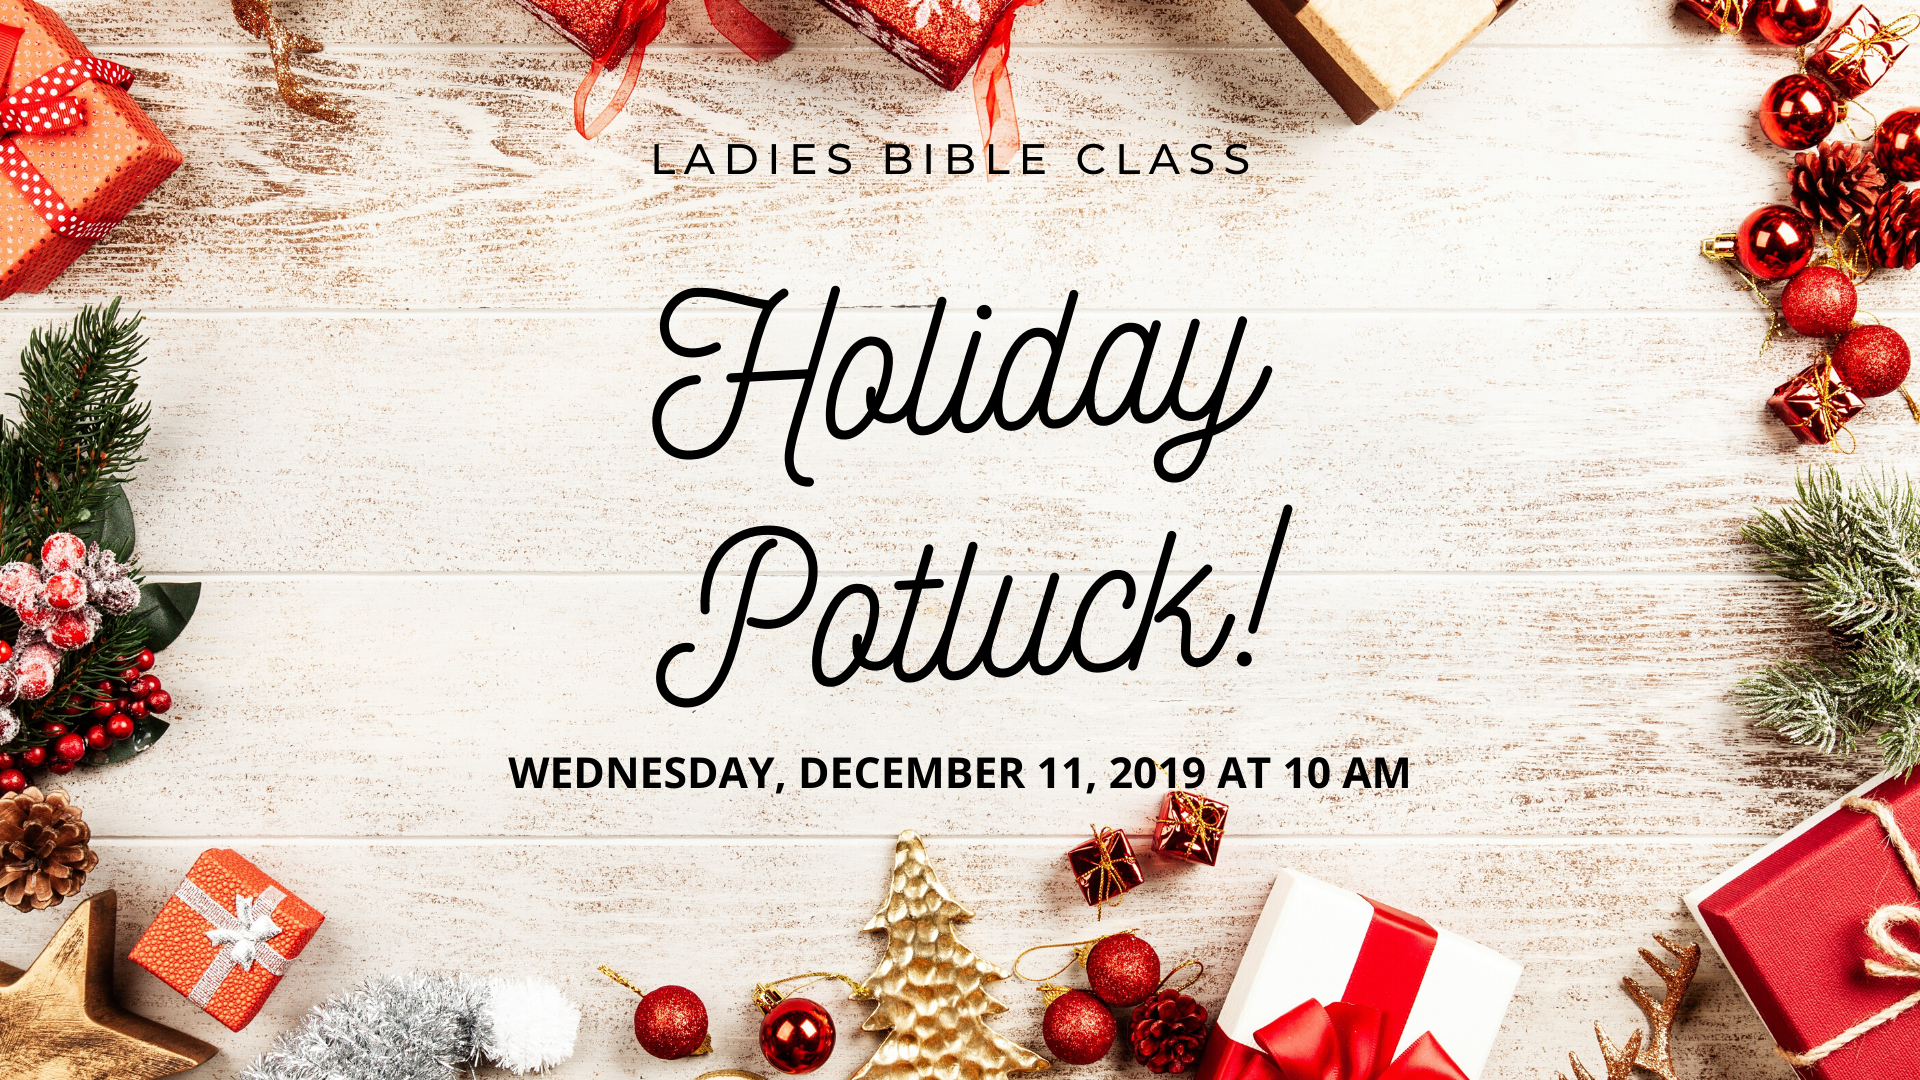 Ladies bible class HOLIDAY